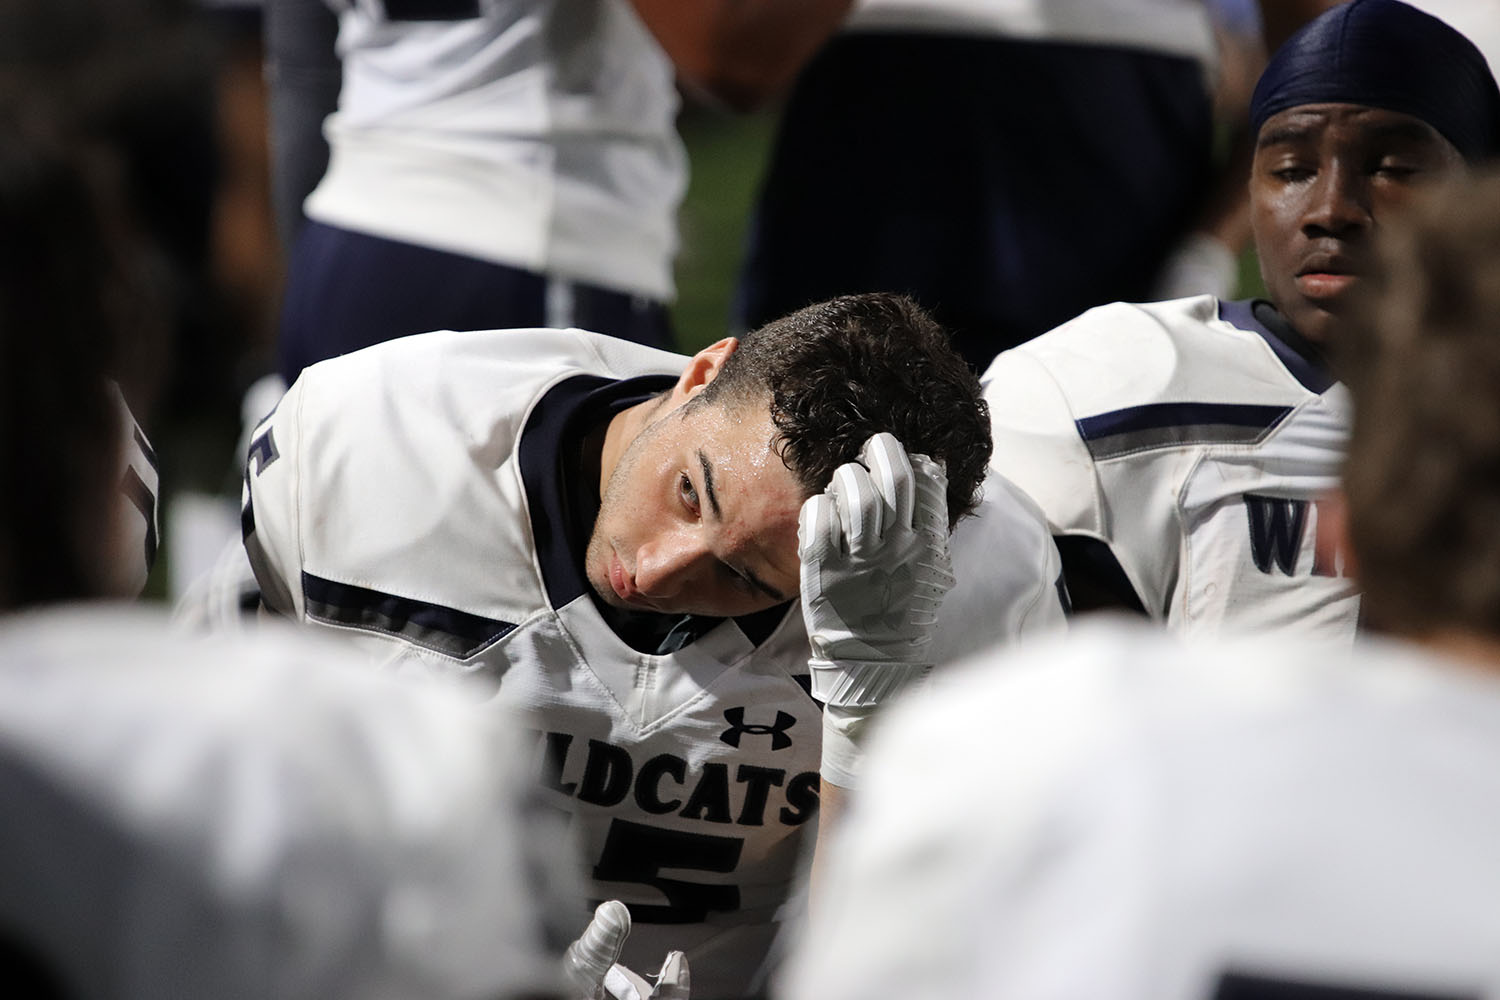 During a football game, junior John Boehning sits with his teammates and eyes the field.